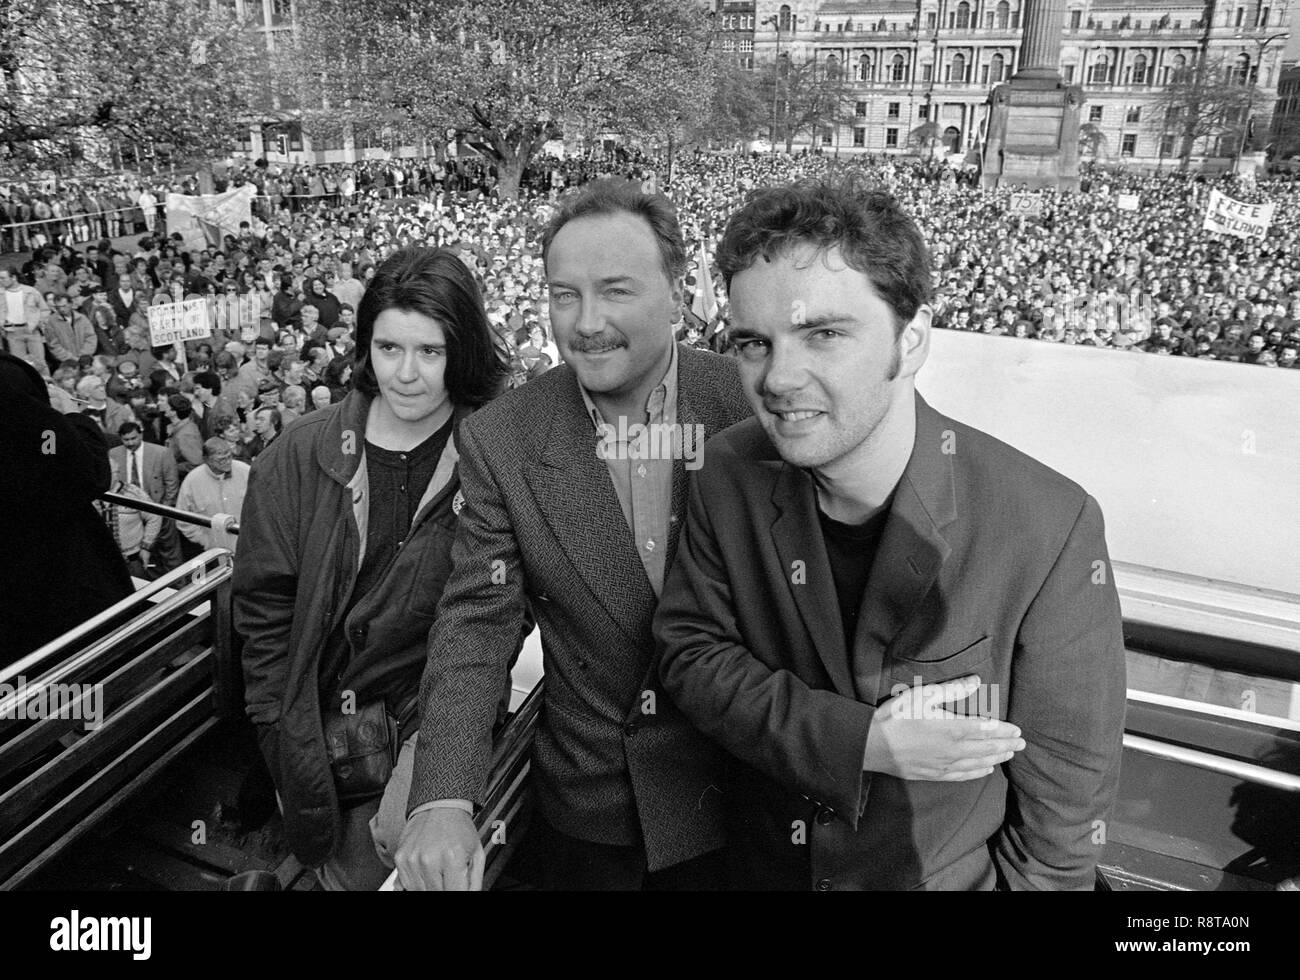 In 1992, George Square in Glasgow was packed with supporters, under the Scotland United banner for a free and independent Scotland. Three of the speakers were a young Nicola Strugeon. A rising star of the Scottish National Party who became the SNP leader and First Minister of Scotland. George Galloway, the maverick politician and MP. Pat Kane who was the founding member, and signer, of the Scottish pop group; Hue and Cry and is now a well respected journalist, writer and columnist. Alan Wylie/ALAMY © - Stock Image